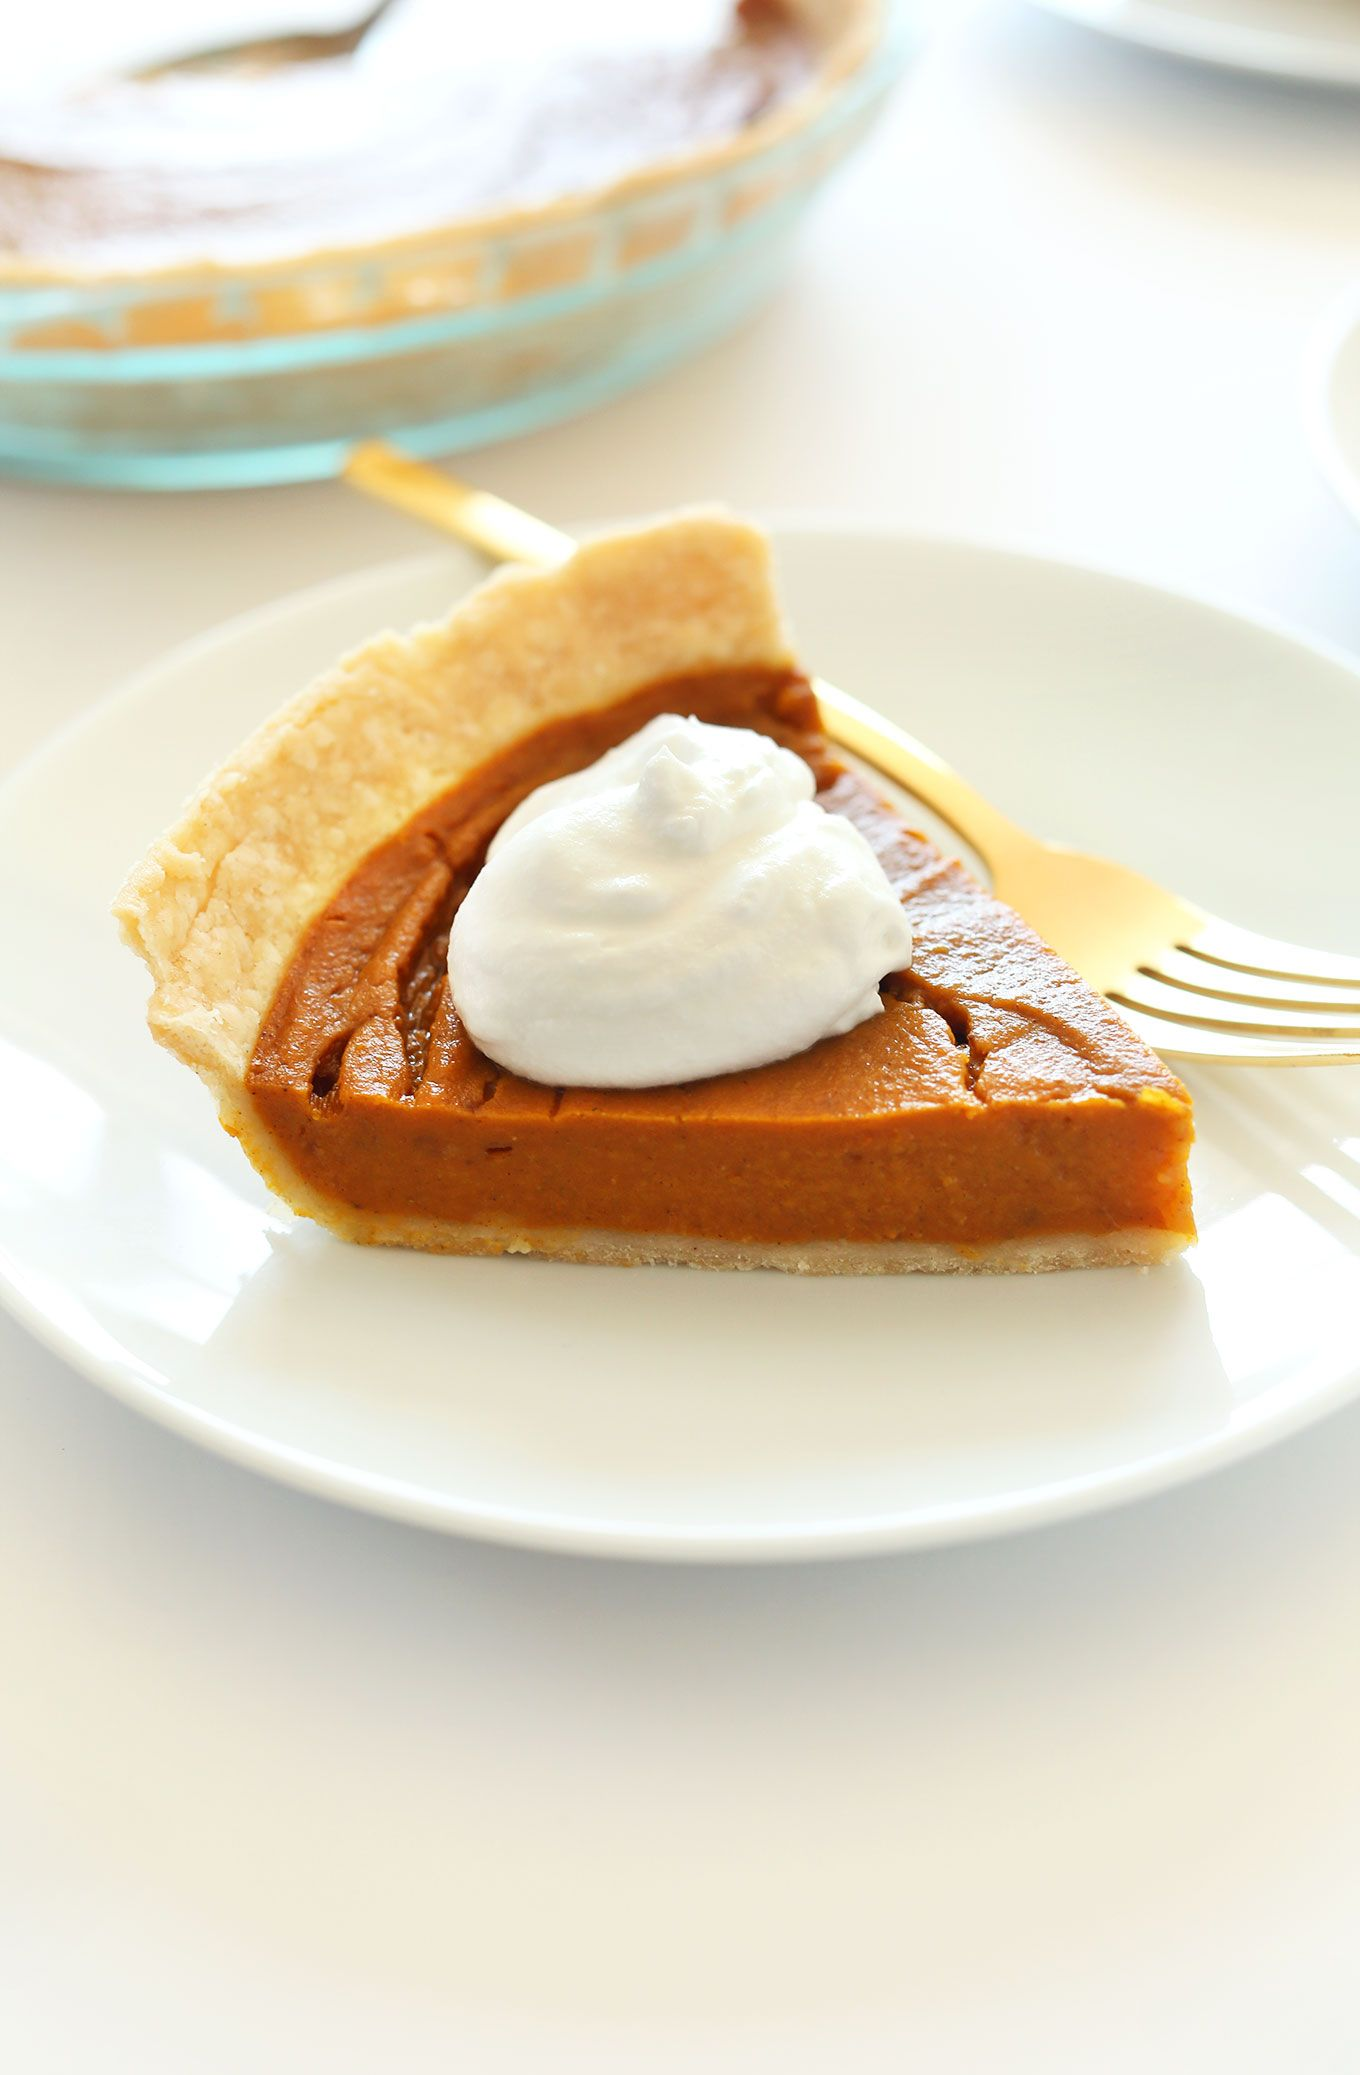 Vegan Gluten Free Pumpkin Pie Minimalist Baker Recipes Recipe Gluten Free Pumpkin Pie Pumpkin Pie Vegan Pumpkin Pie